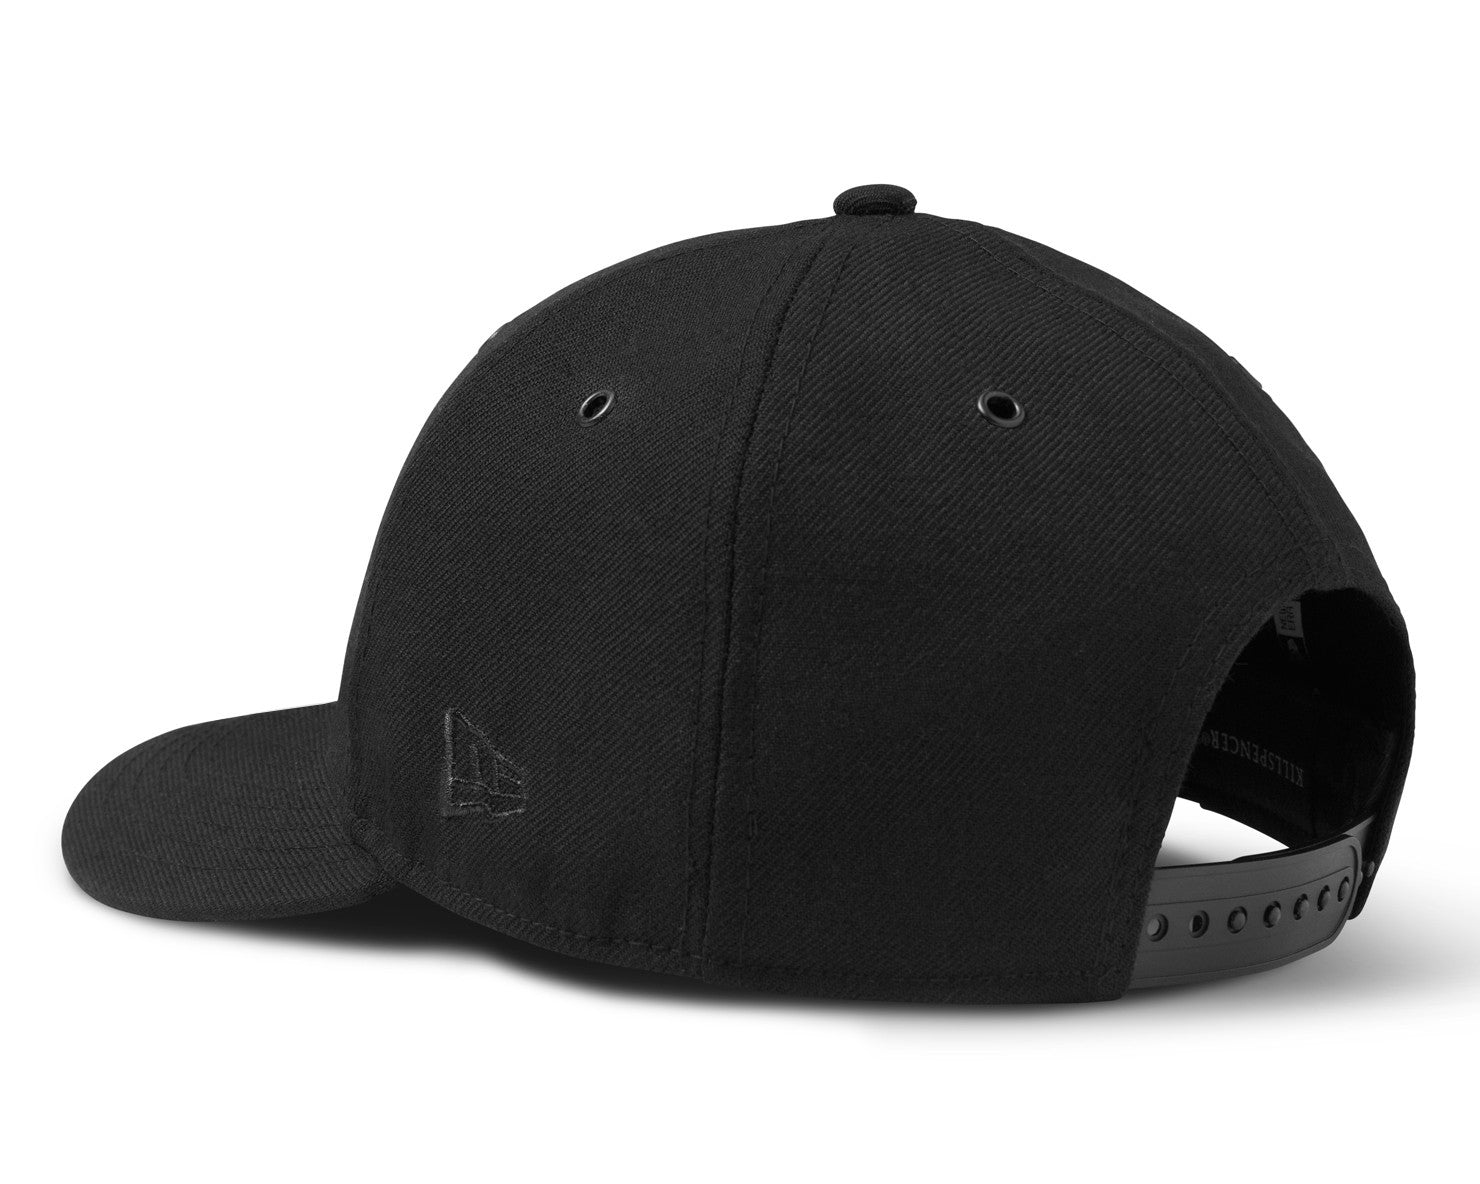 SNAPBACK CAP | KILLSPENCER® - Black Wool